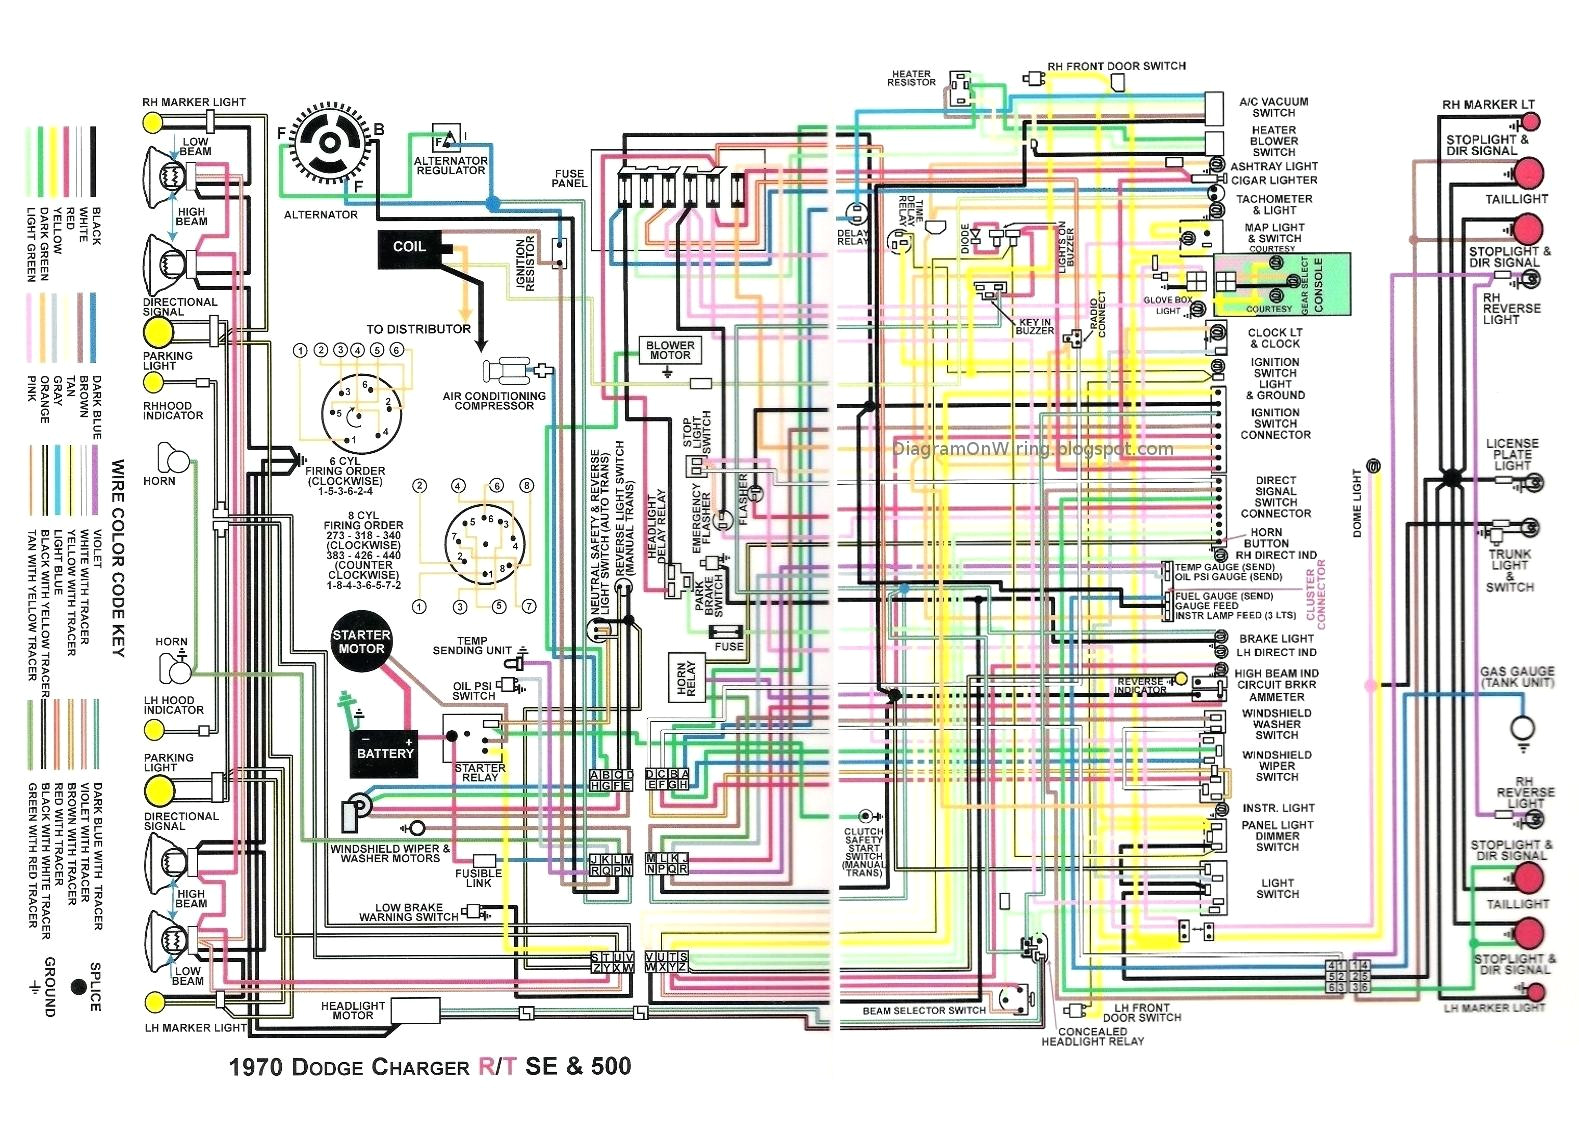 1973 challenger 318 engine wiring diagram wiring diagram completed 1973 dodge charger wiring harness wiring diagrams